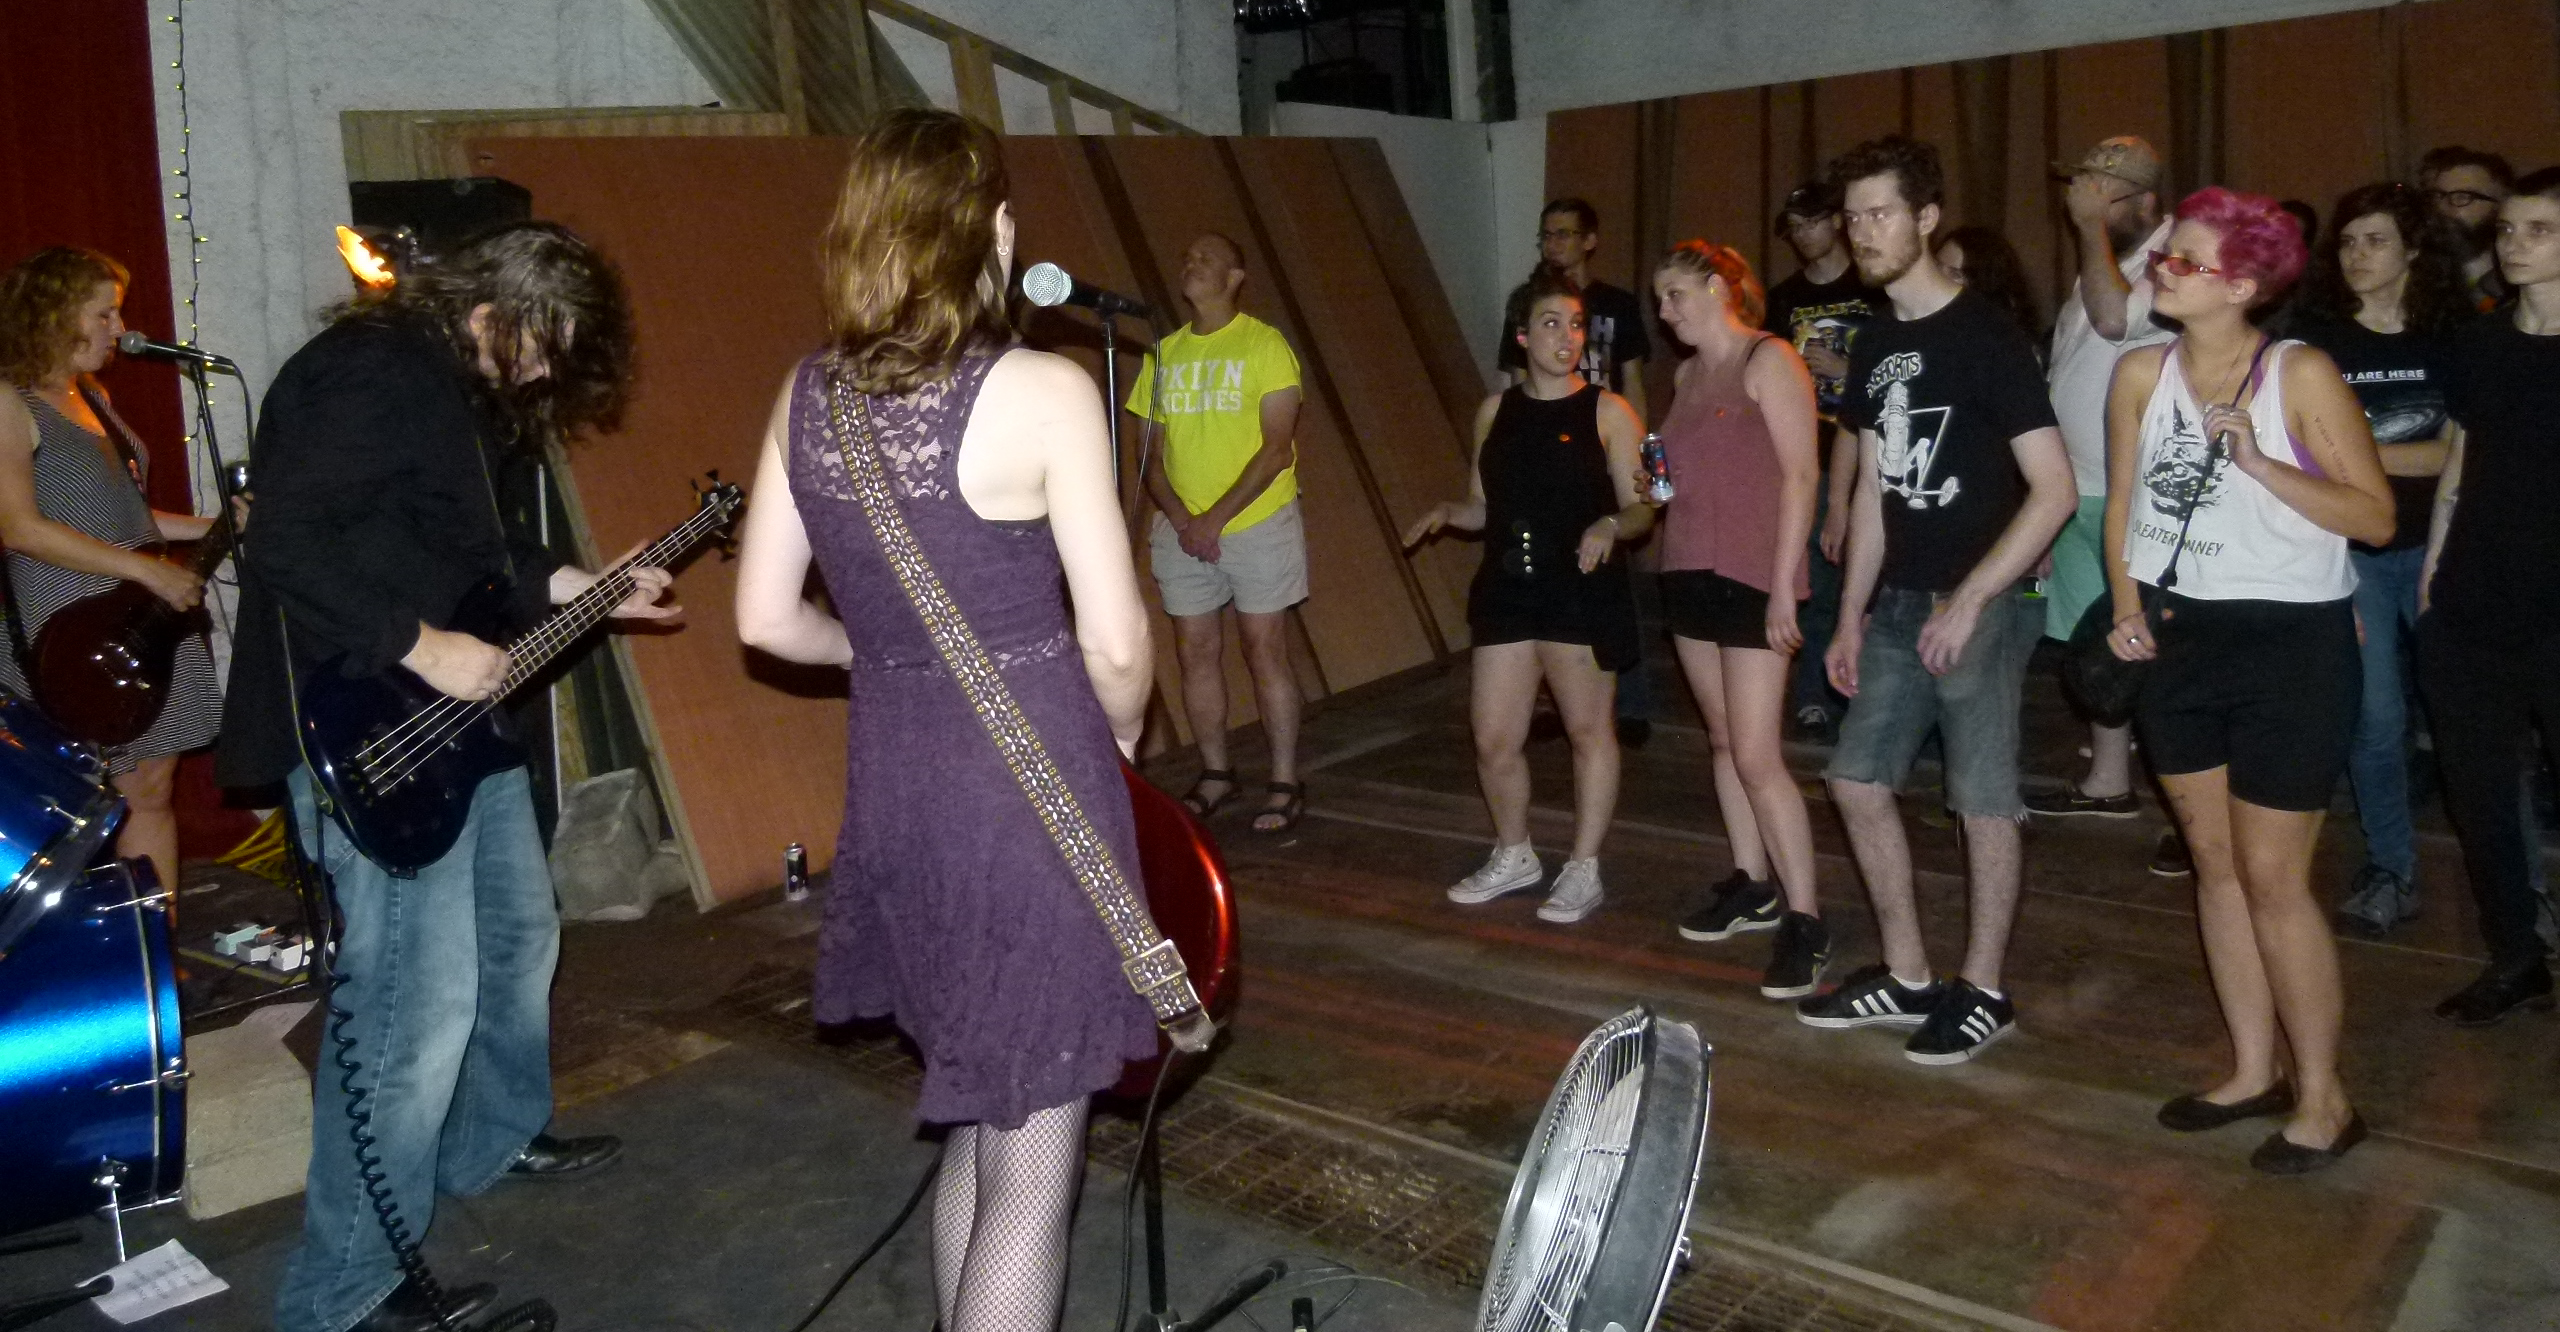 The crowd gets into Murder for Girl's power punk rock.